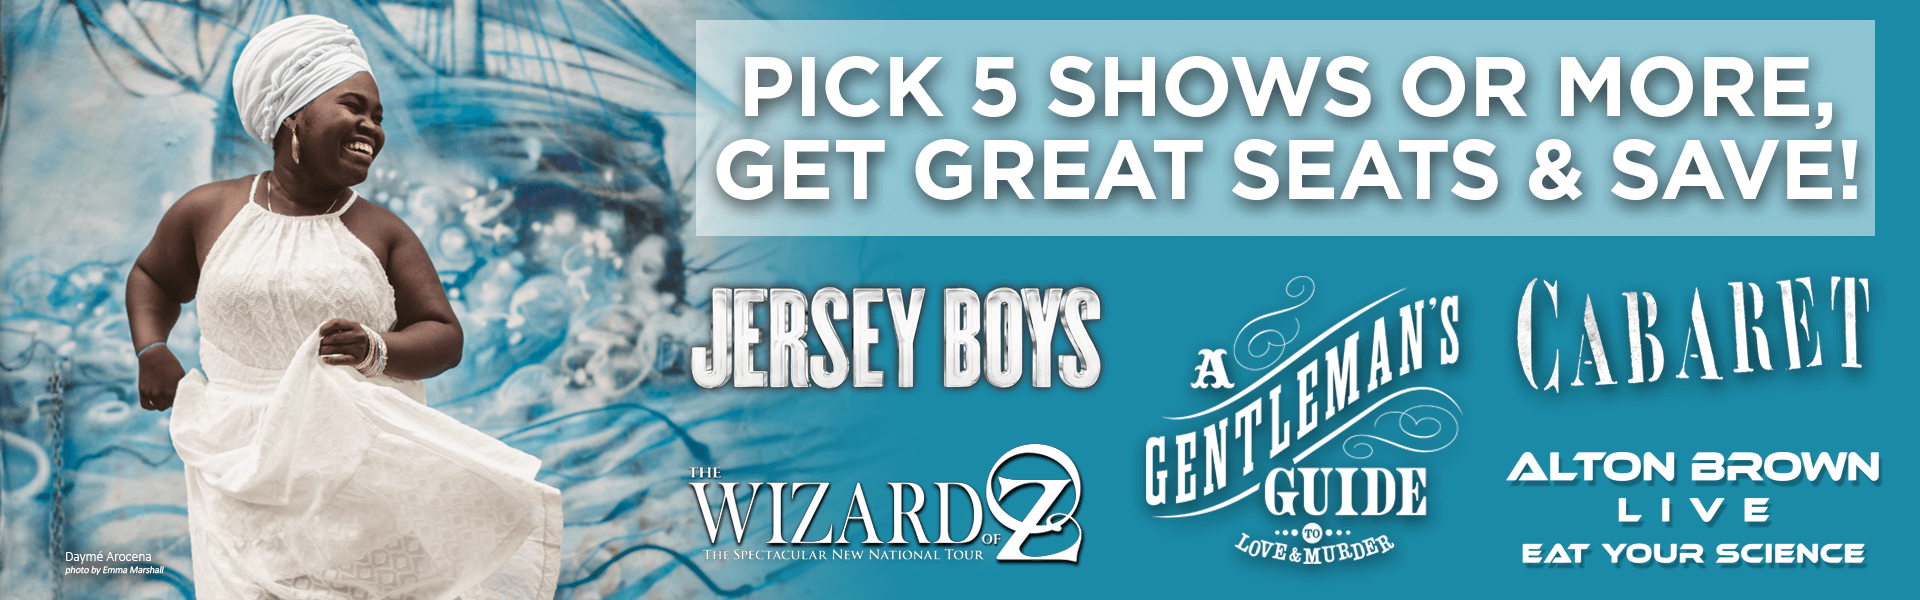 Pick 5 shows or moree, get great seats & save! Jersey Boys, The Wizard of Oz, A Gentleman's Guide to Love and Murder, Cabaret, The Illusionists present Adam Trent